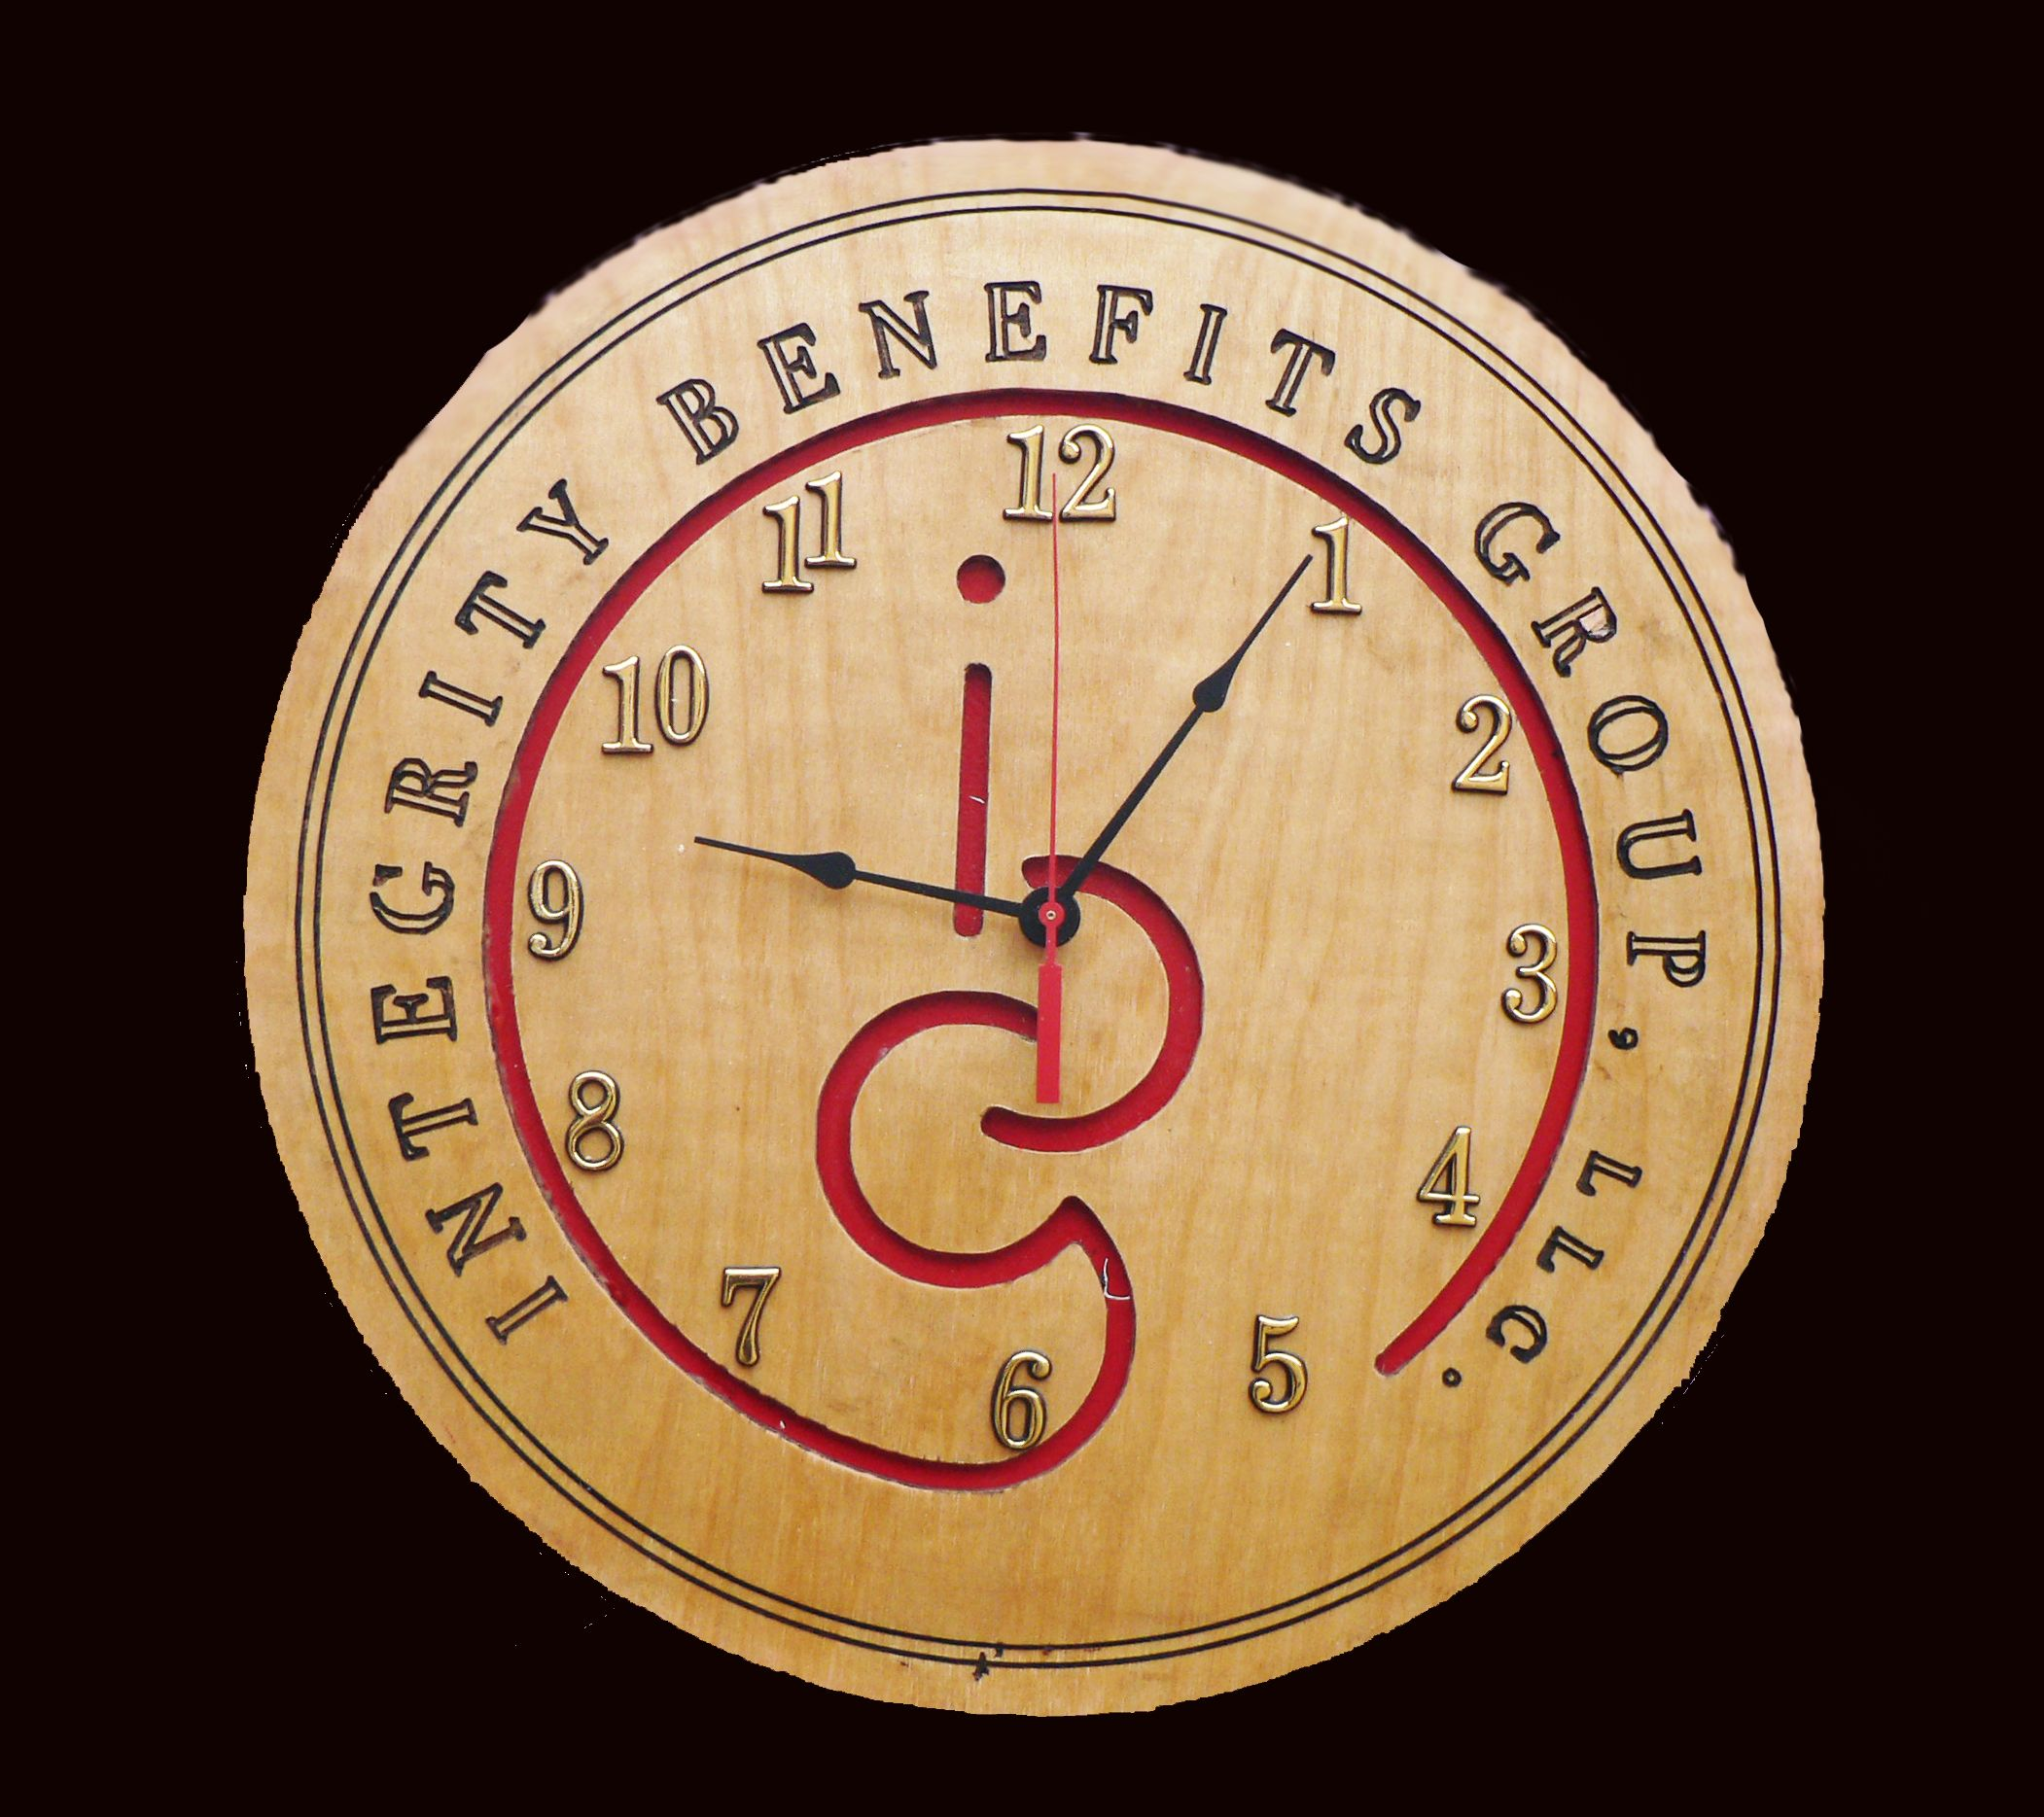 Wall clock logo gallery home wall decoration ideas wall clock logo choice image home wall decoration ideas hand made custom wall clock logo trademark amipublicfo Gallery